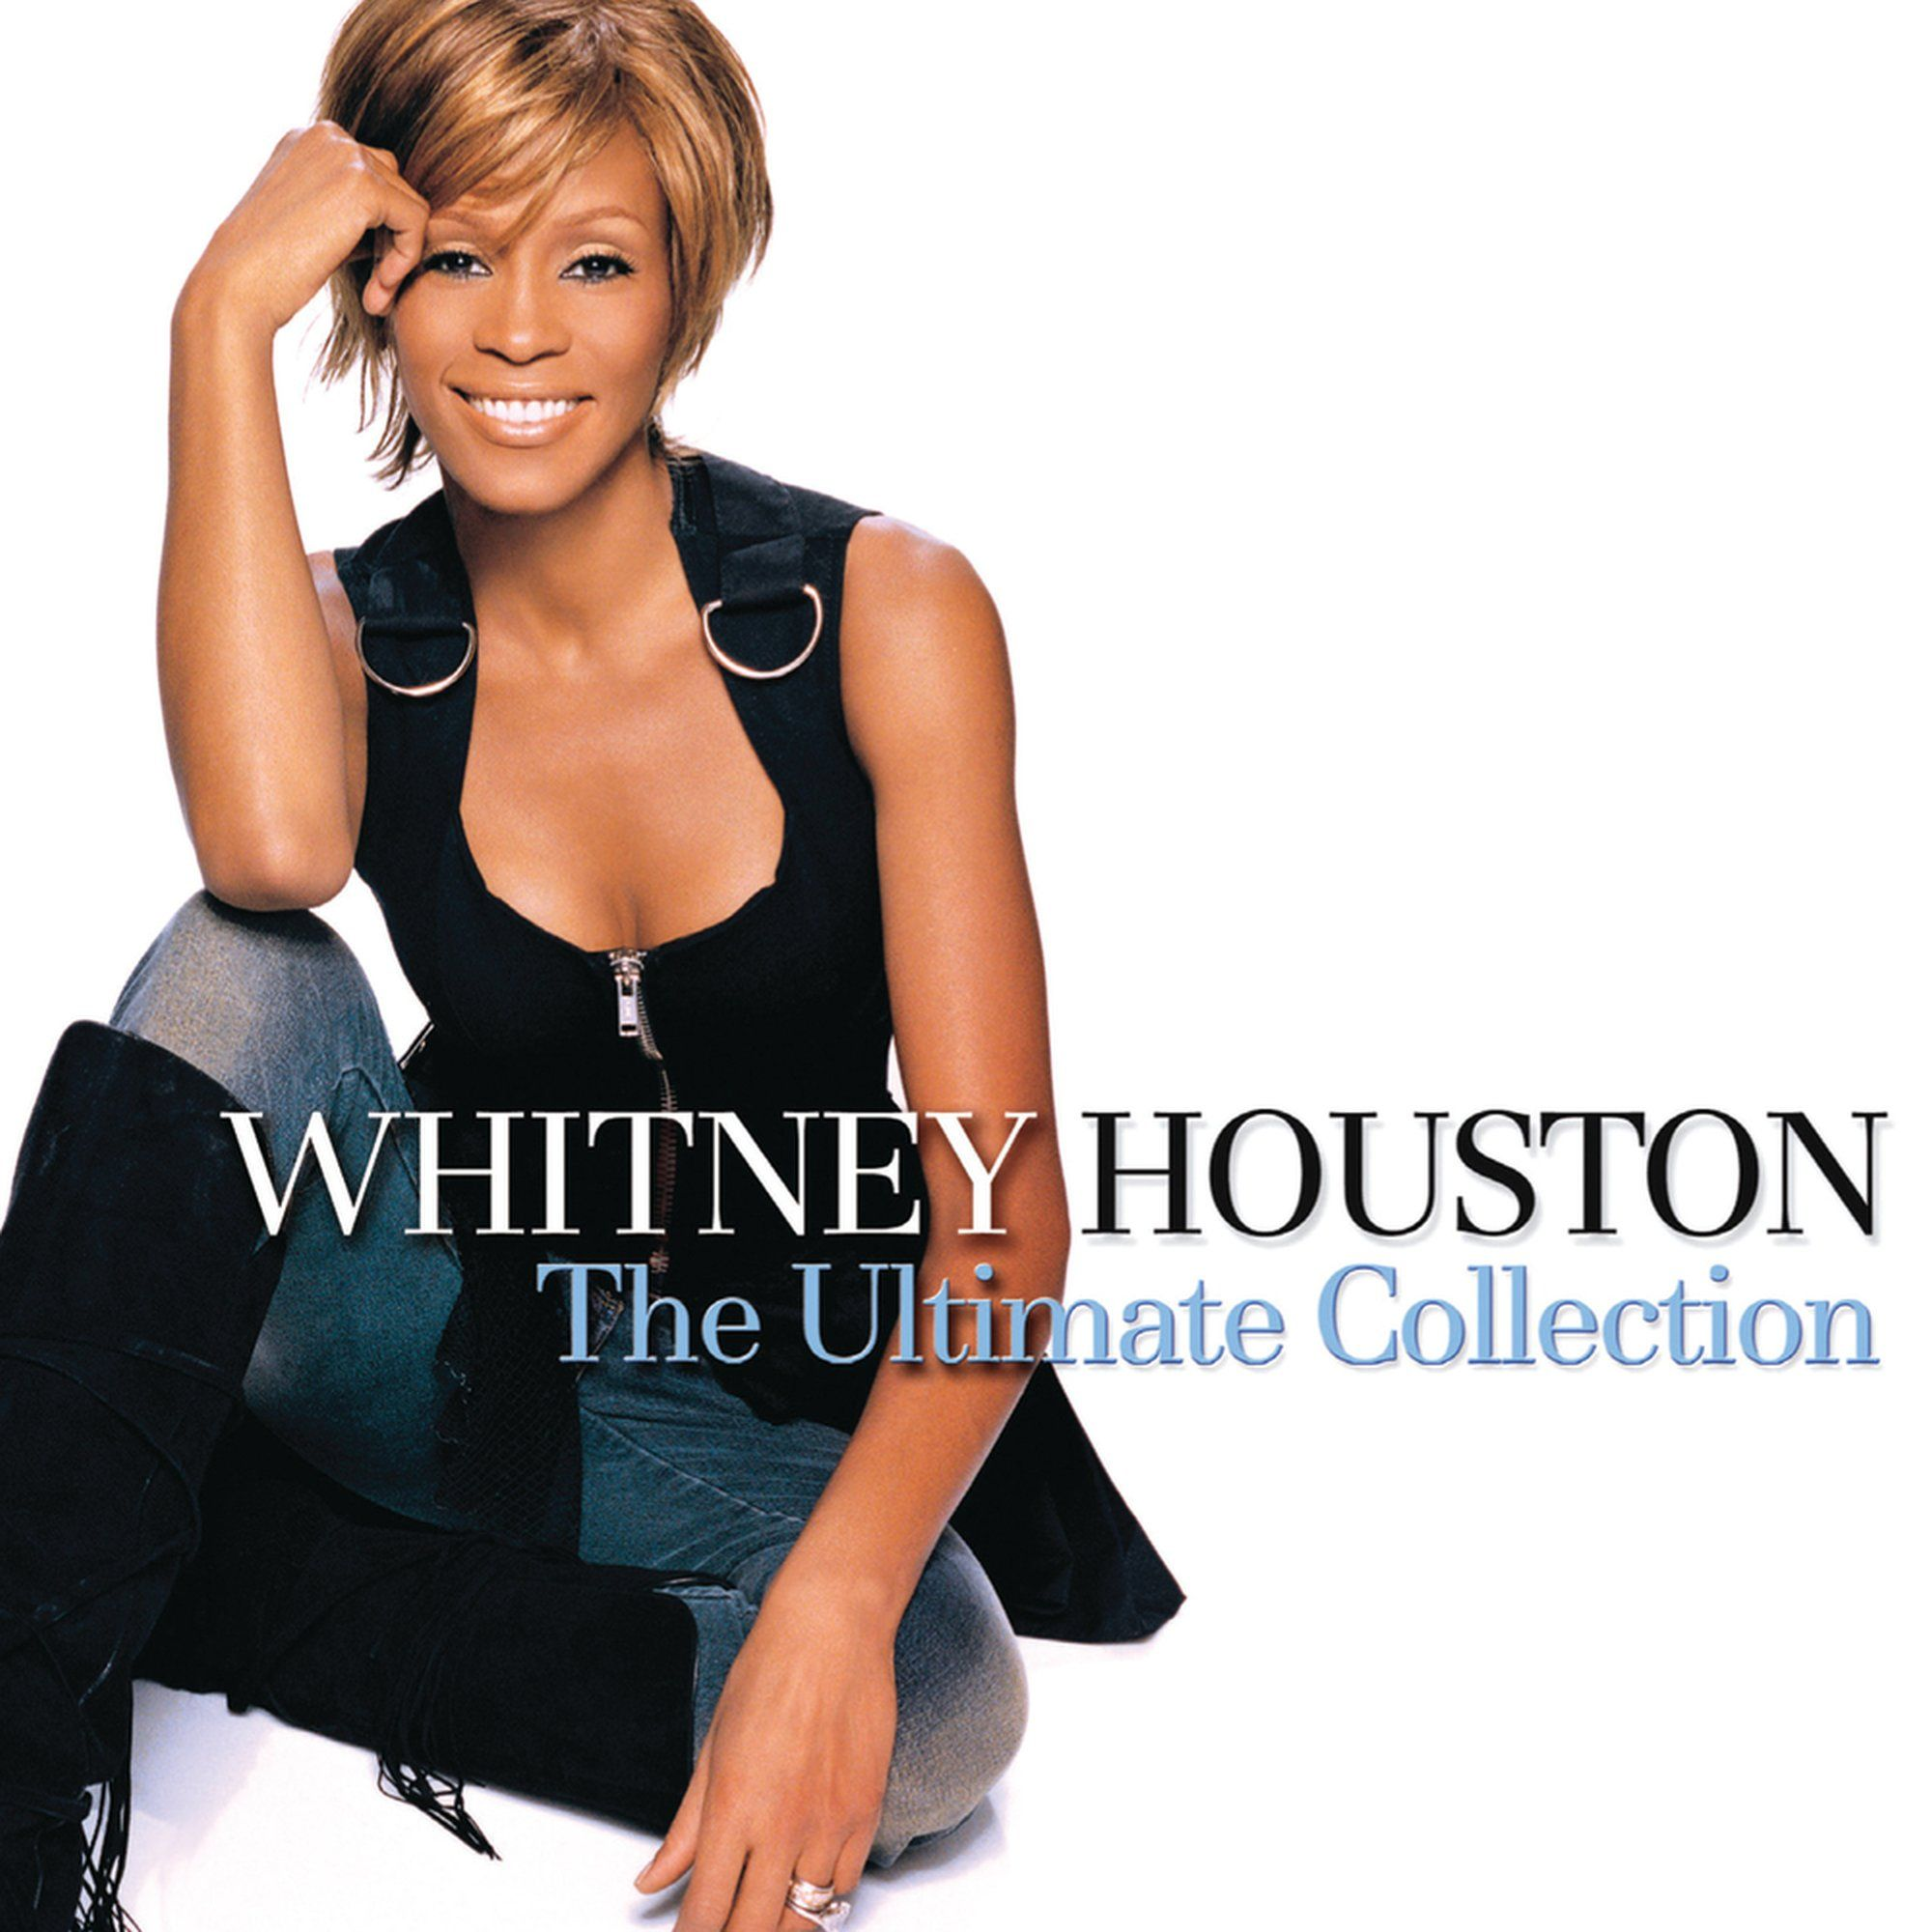 Whitney Houston - The Ultimate Collection album cover